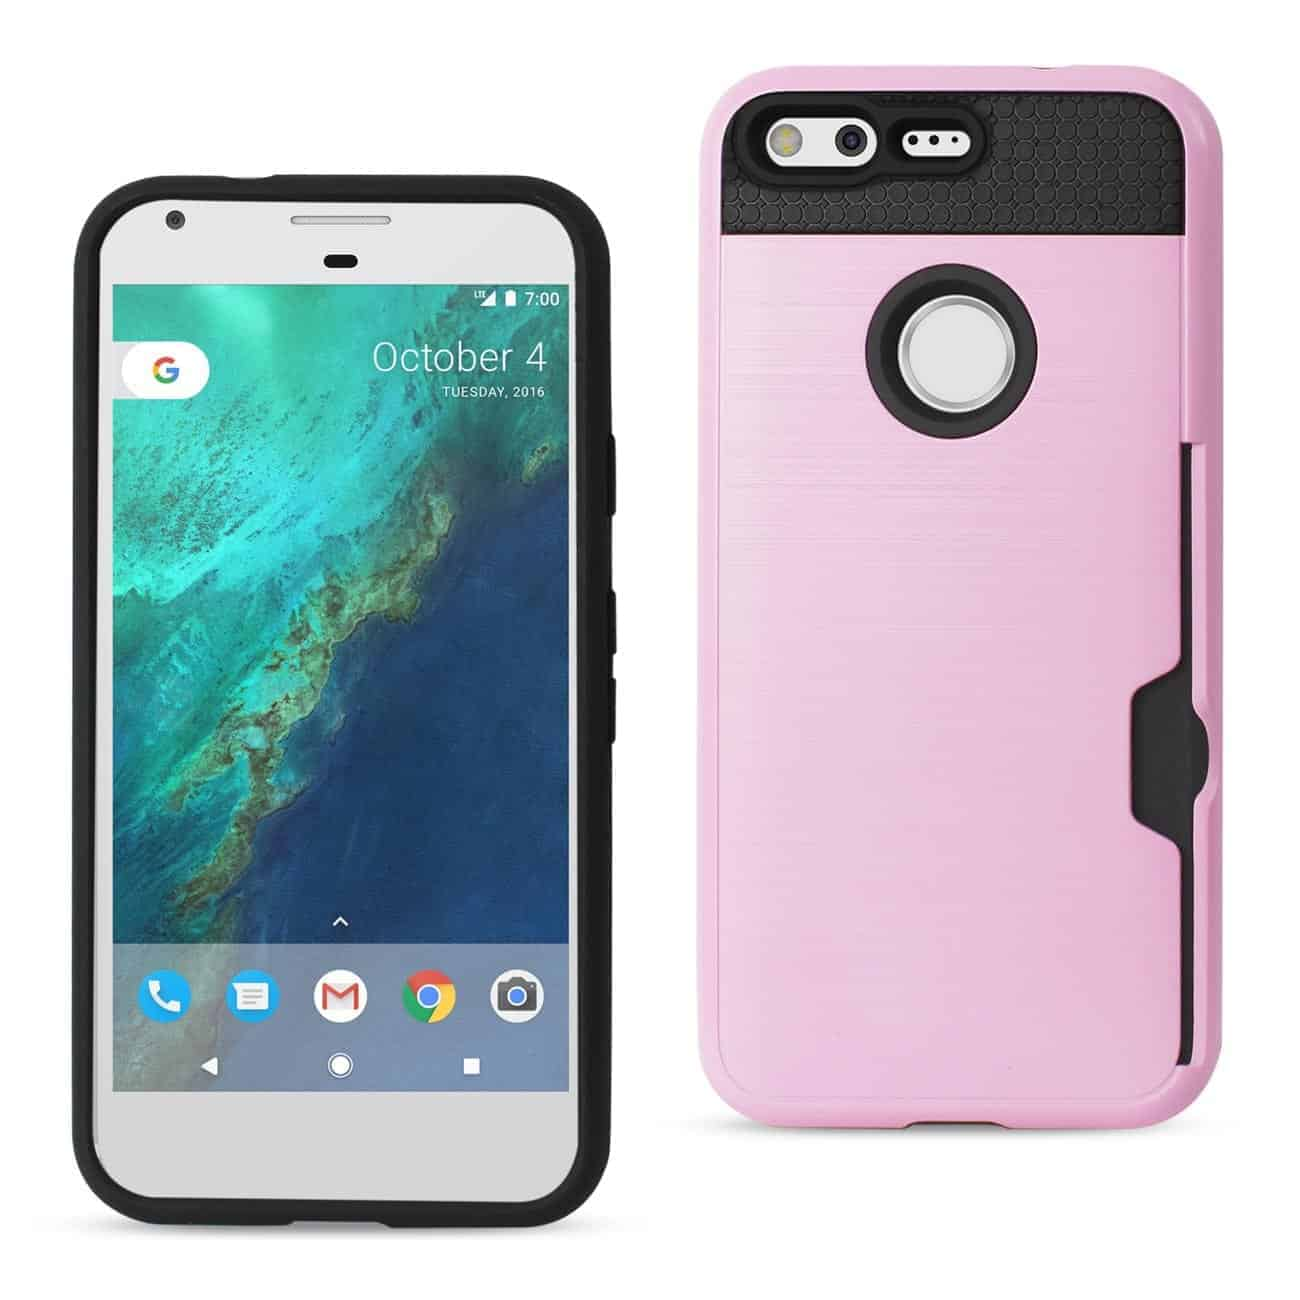 GOOGLE PIXEL SLIM ARMOR HYBRID CASE WITH CARD HOLDER IN ROSE GOLD